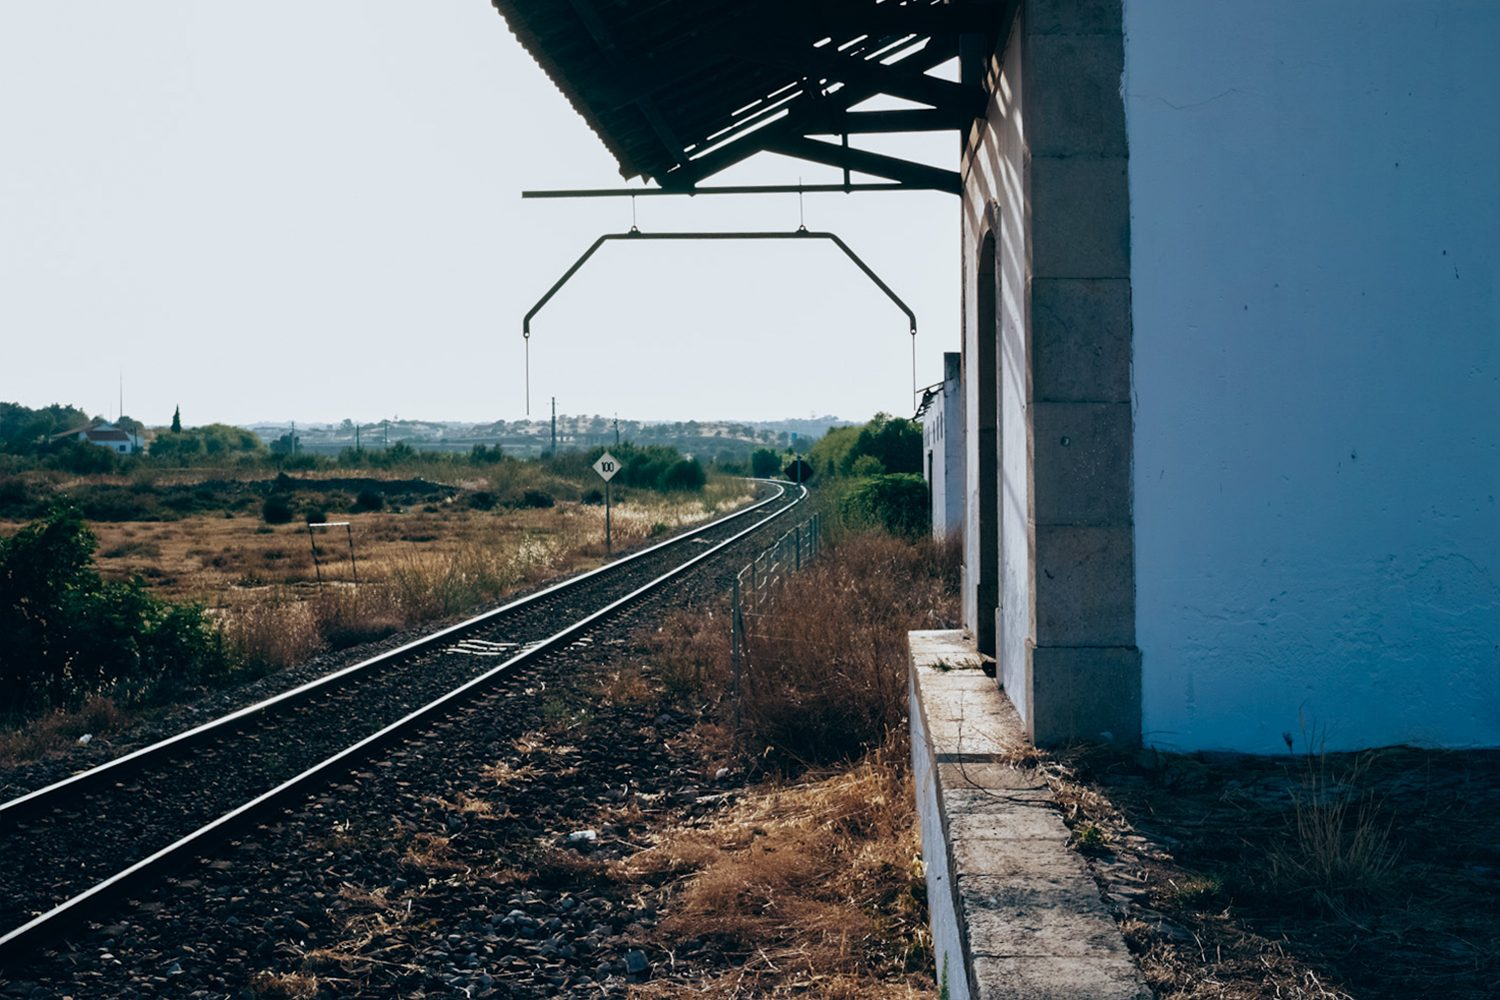 algarve_trainstations_portugal_thevoyageur002